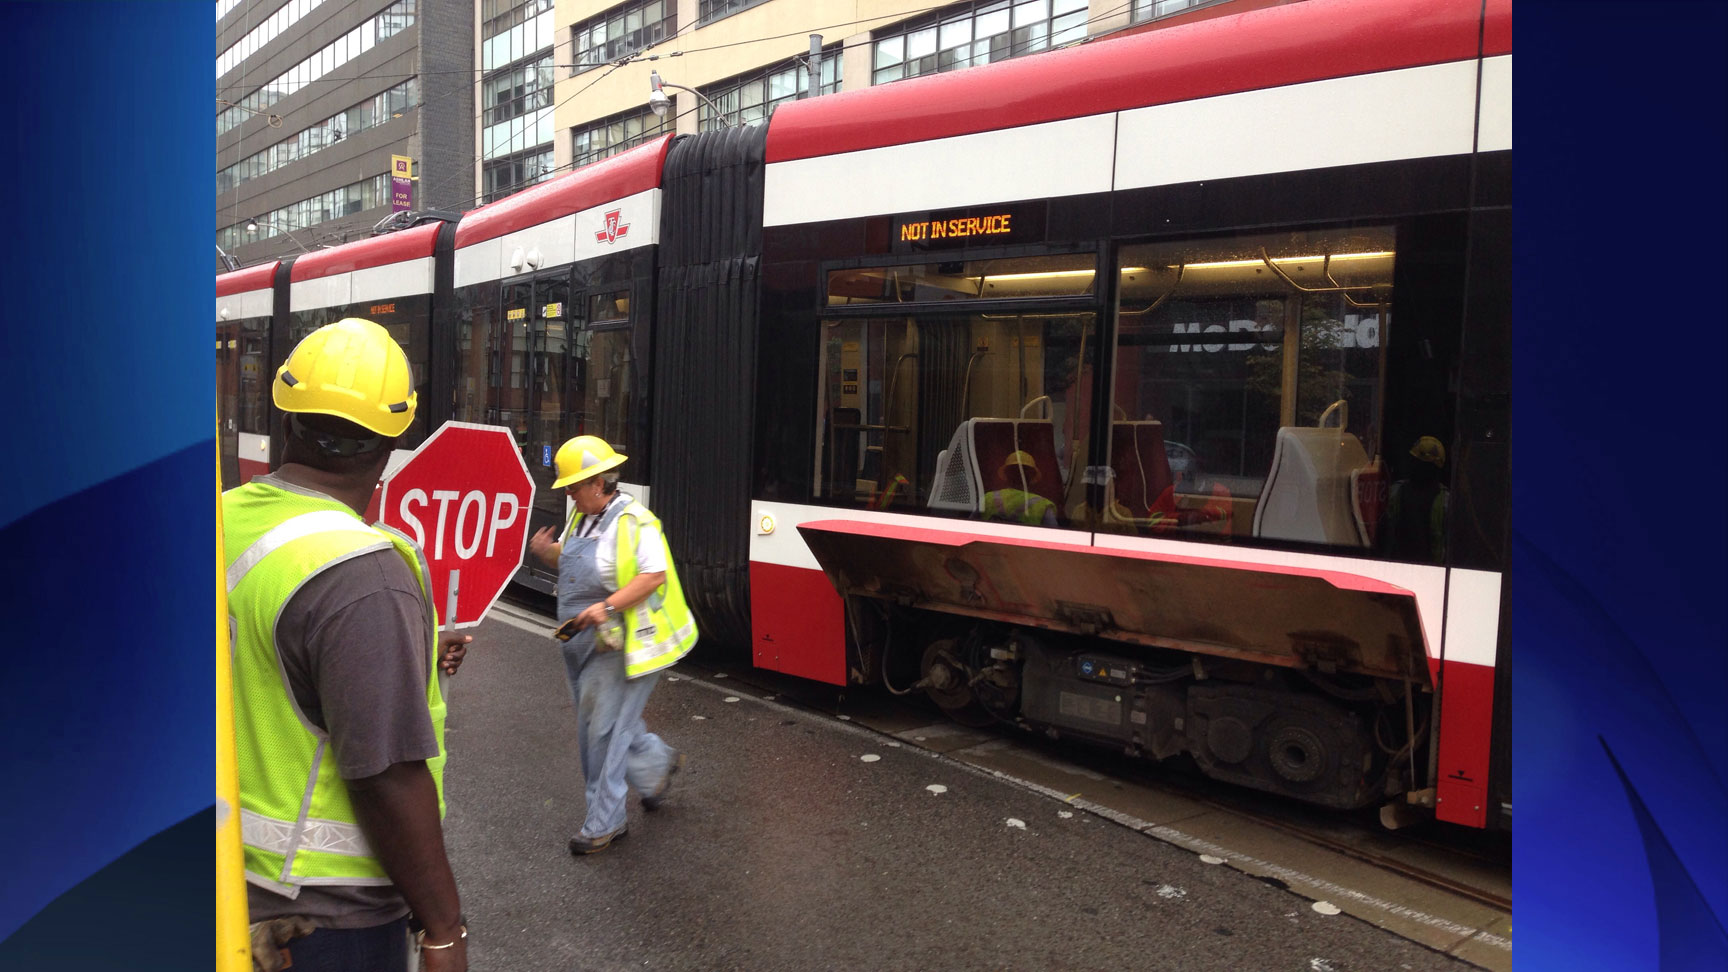 A new streetcar derailed at King and Bathurst streets on Aug. 16, 2016. CITYNEWS/Peter Dworschak